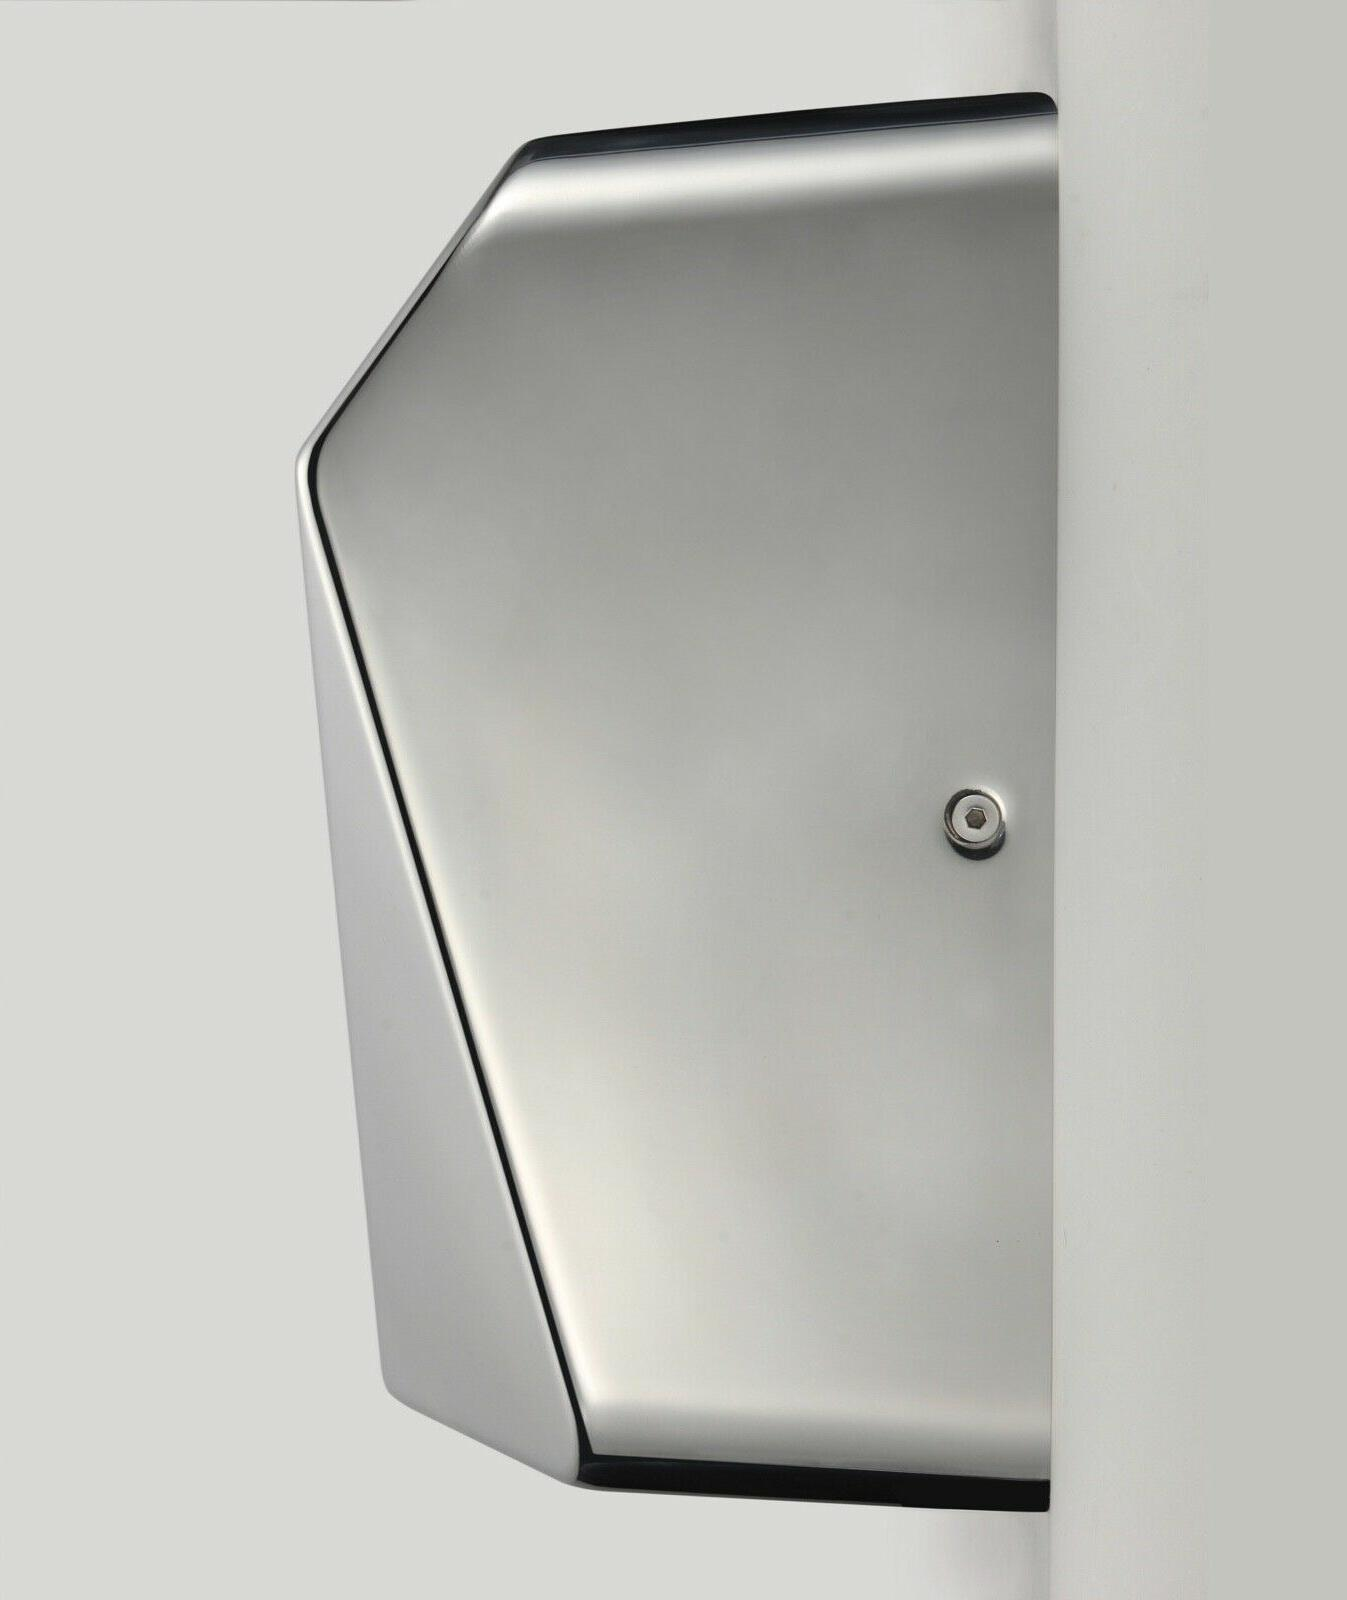 2 JETWELL NEW Upgrade Speed Commercial Stainless Steel Hand Dryer